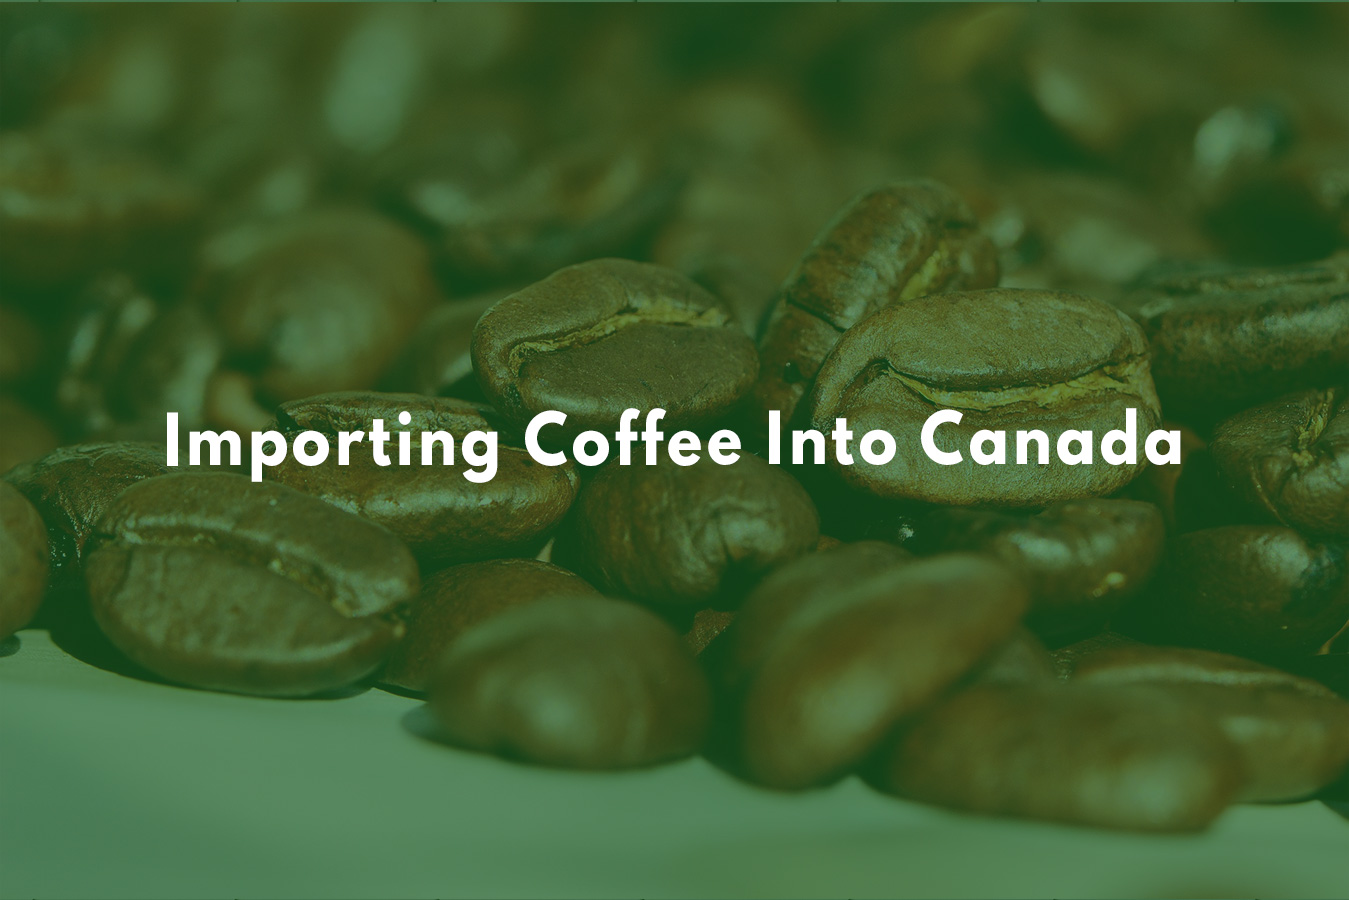 Importing Coffee Into Canada